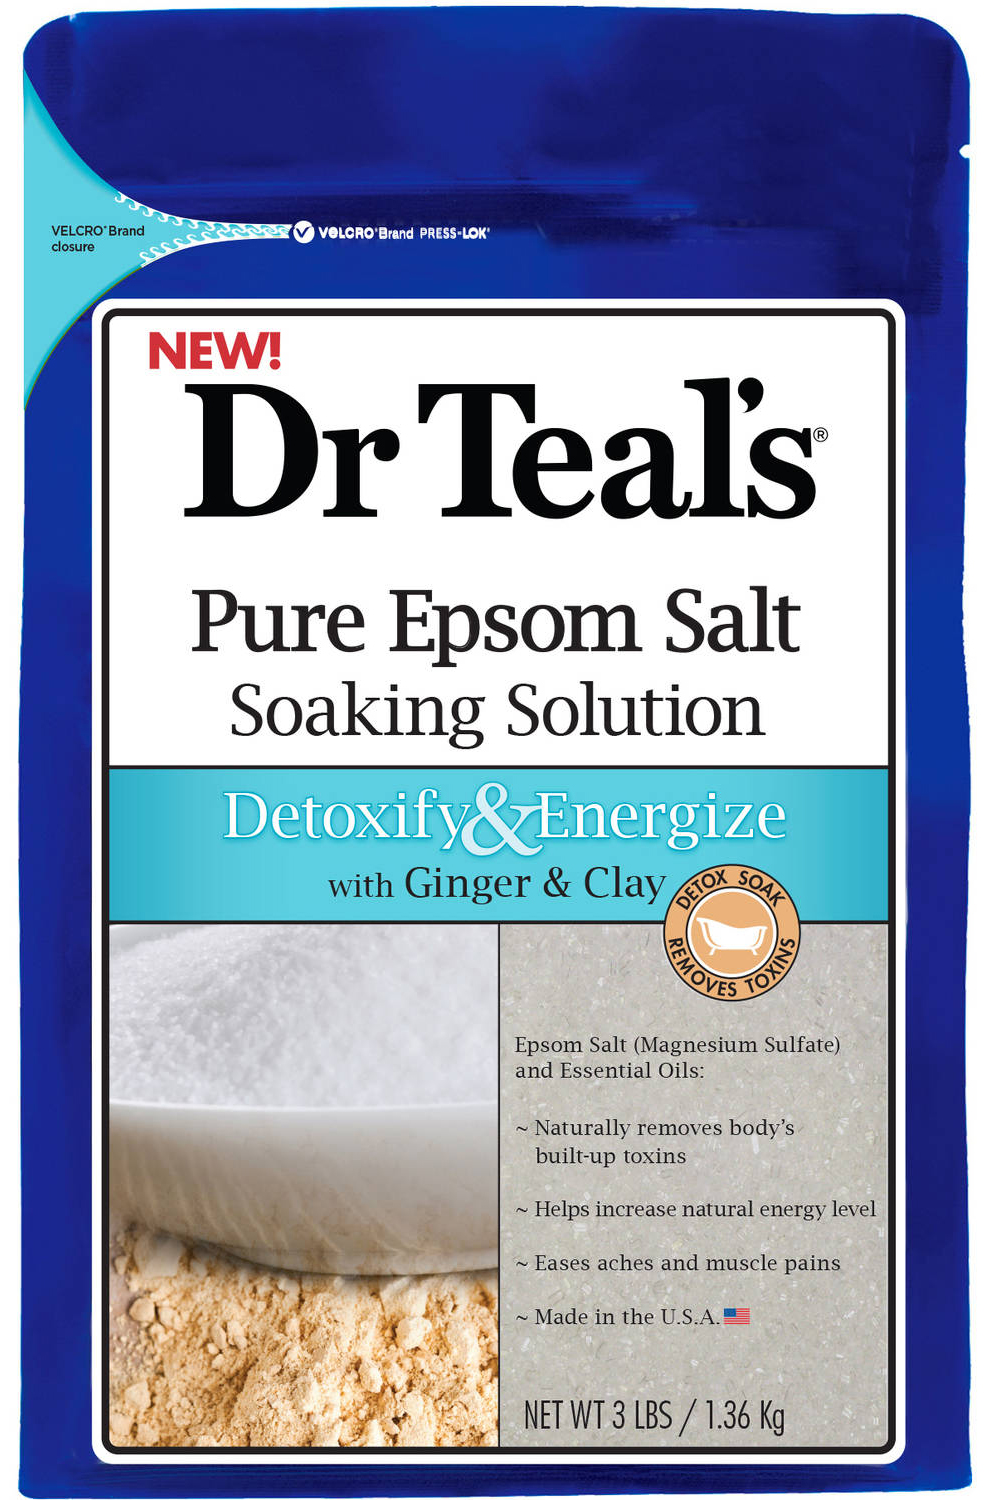 Dr. Teal's Ginger & Clay